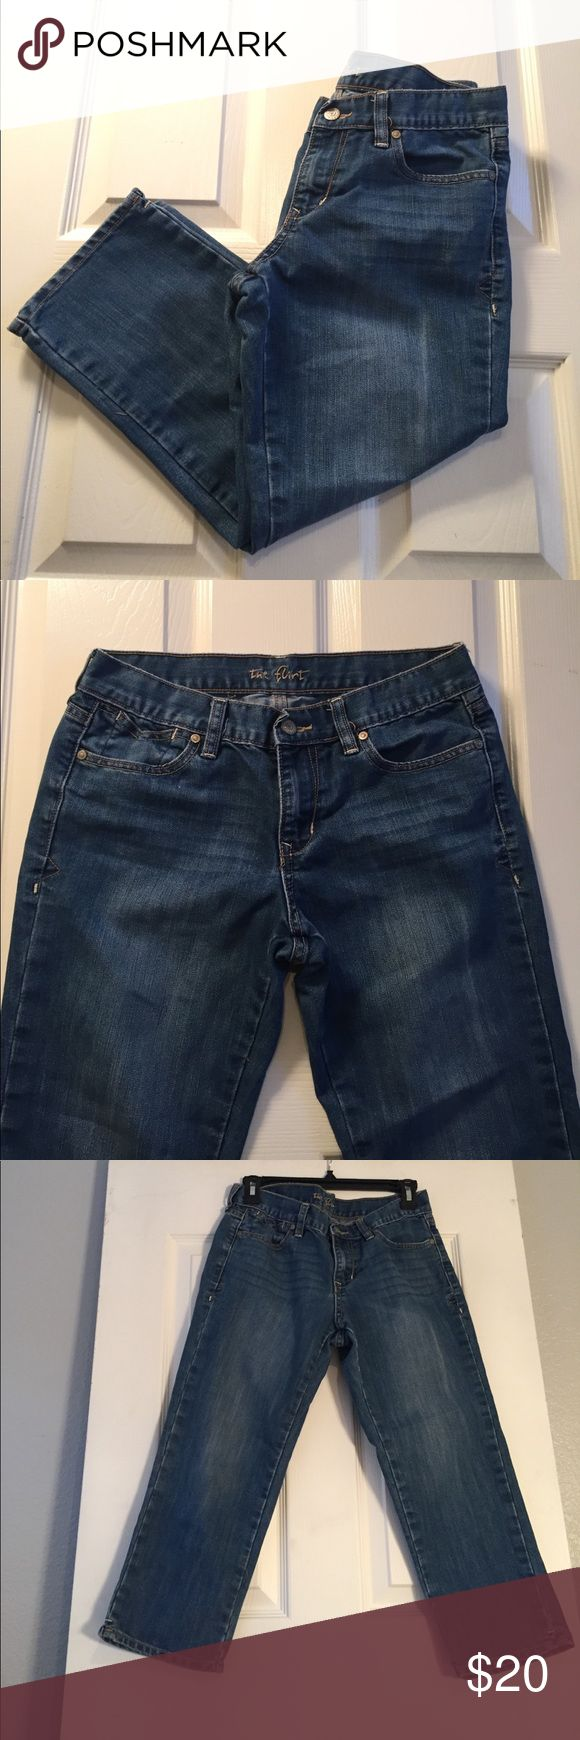 """The """"Flirt"""" Mid-Rise Jeans Women's Size 4 Mid Rise. 75% Cotton 25% Polyester. Inseam 20 1/2"""" Rise 8"""".  Preowned and in great condition. Please see all 8 photos. Old Navy Jeans Ankle & Cropped"""